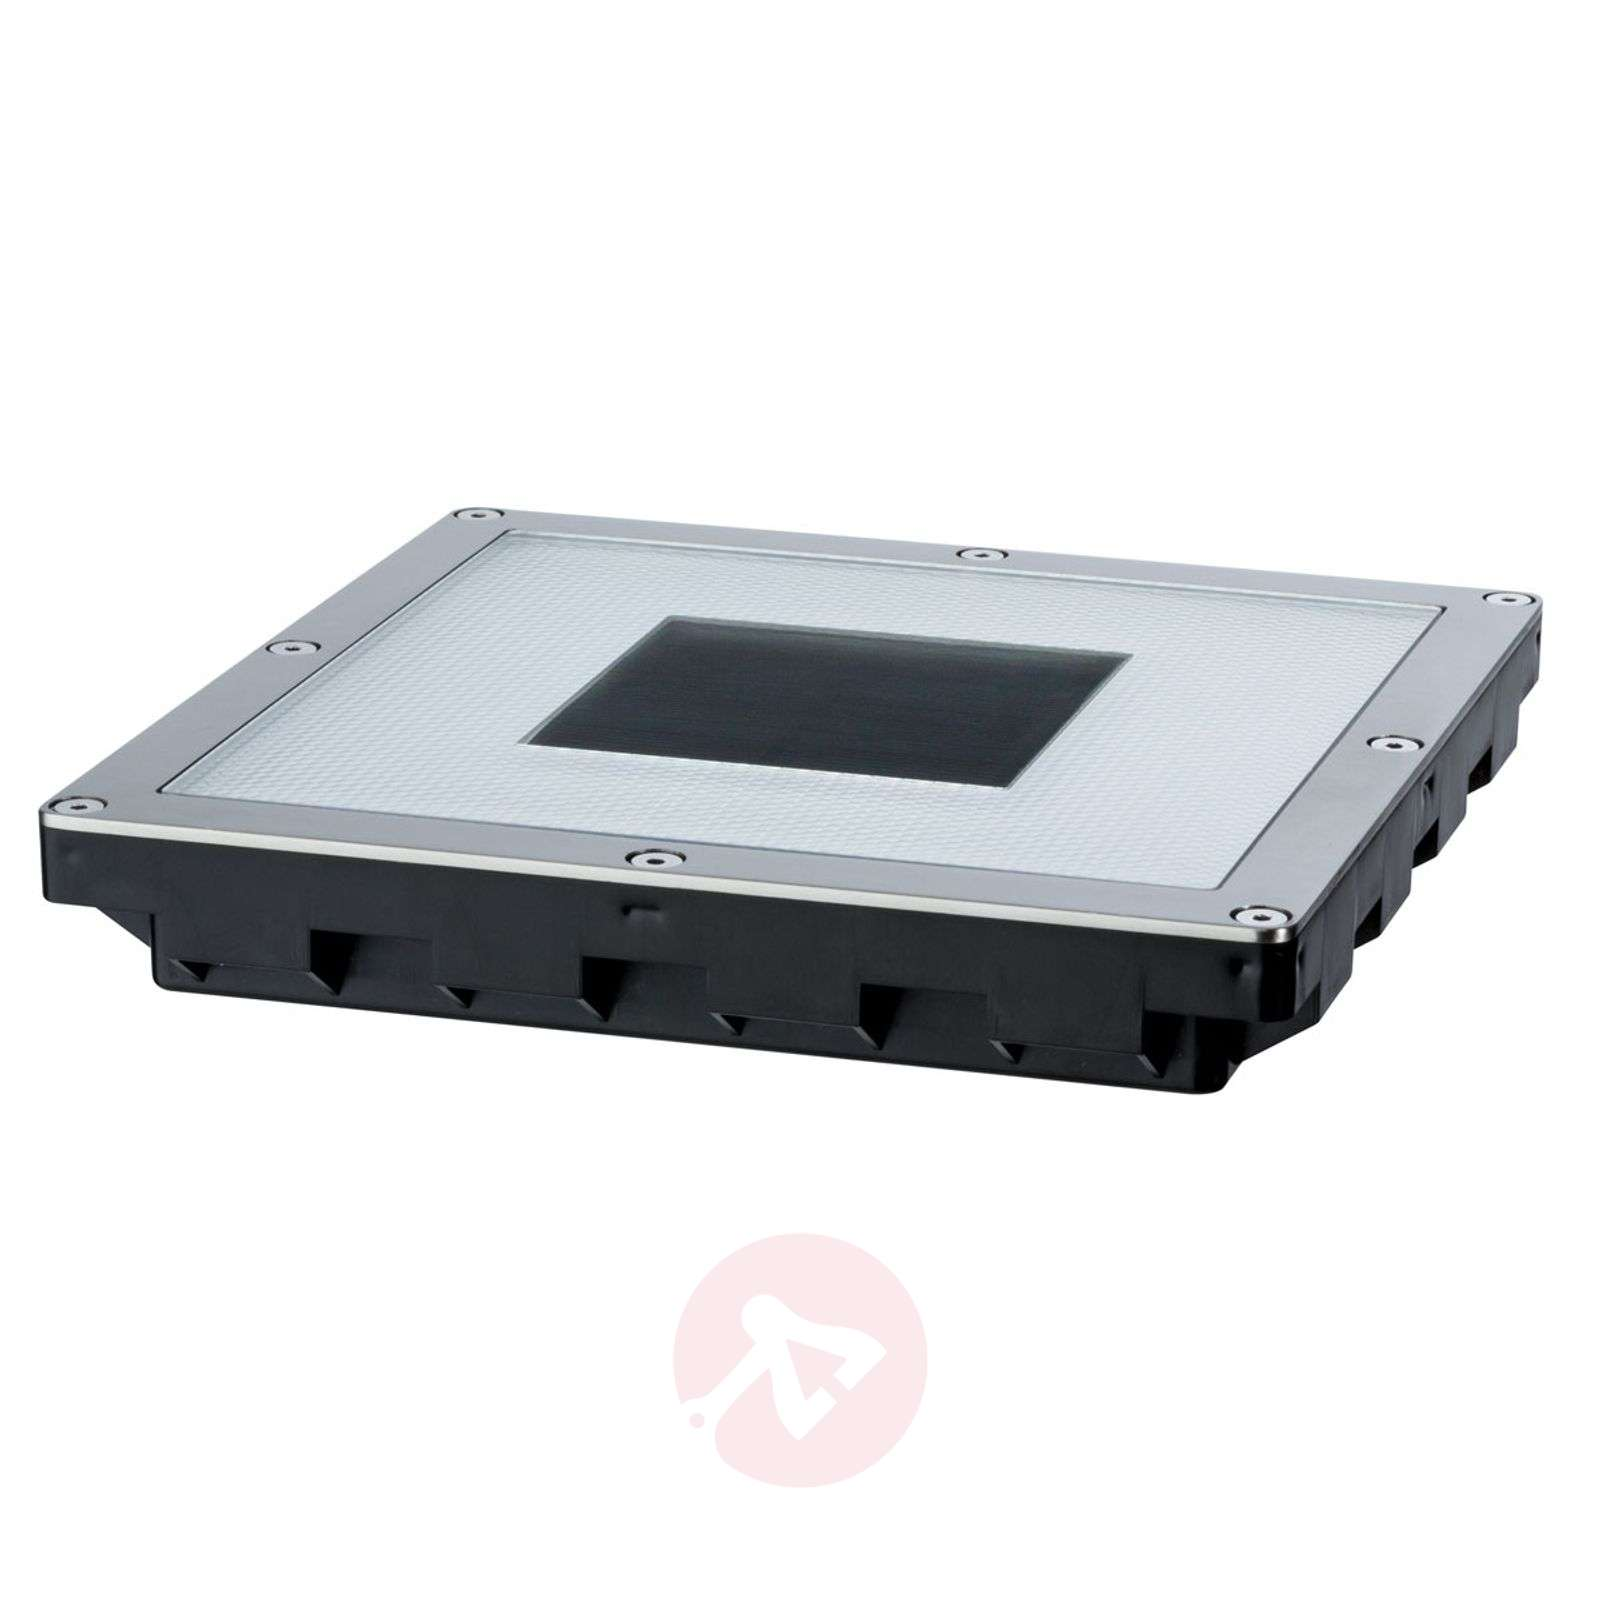 Paulmann Solar Box LED-lattiauppovalaisin 20x20cm-7600840-01